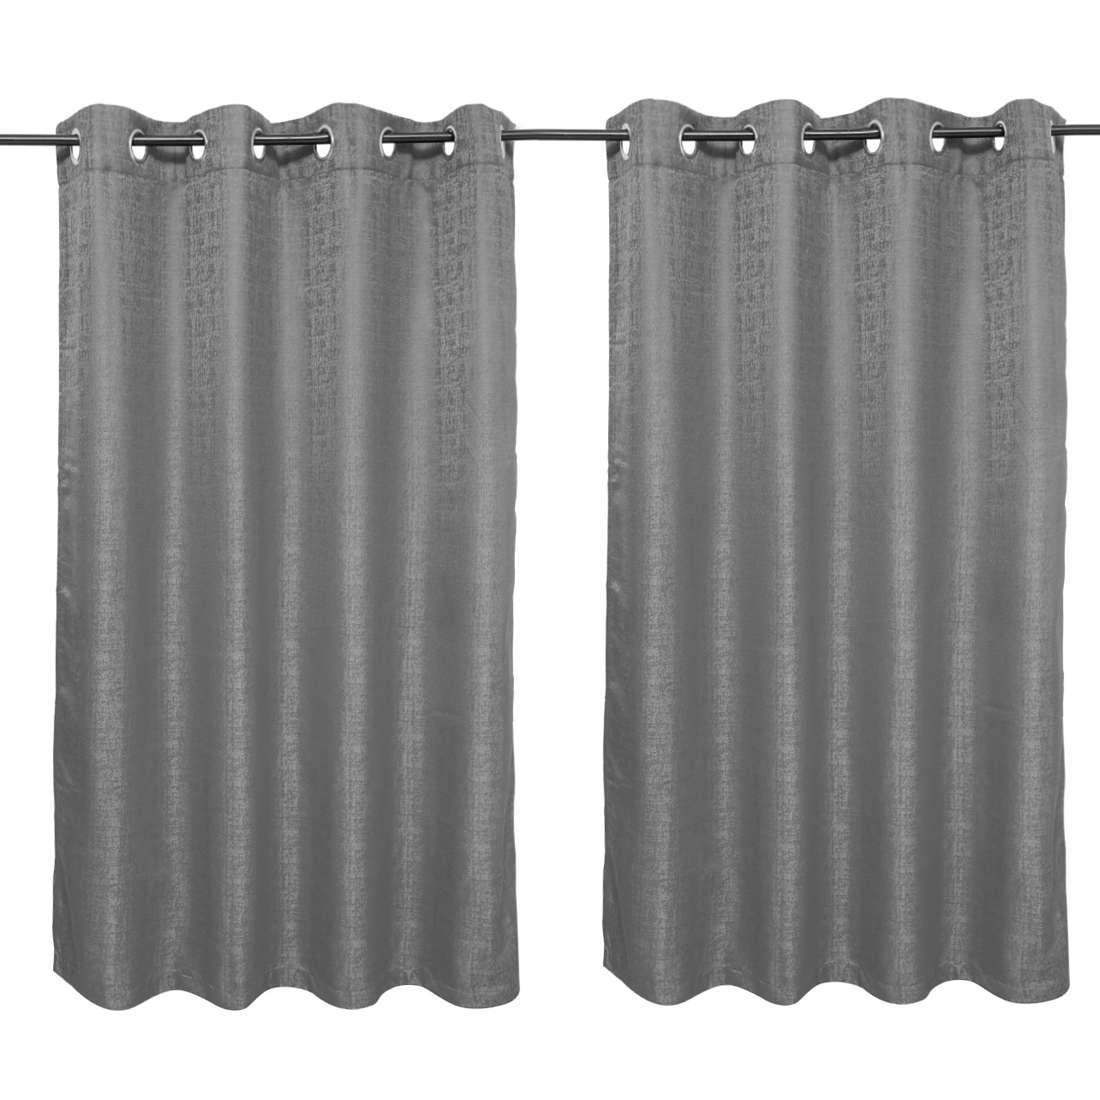 Nora Solid set of 2 Polyester Window Curtains in Charcoal Colour by Living Essence